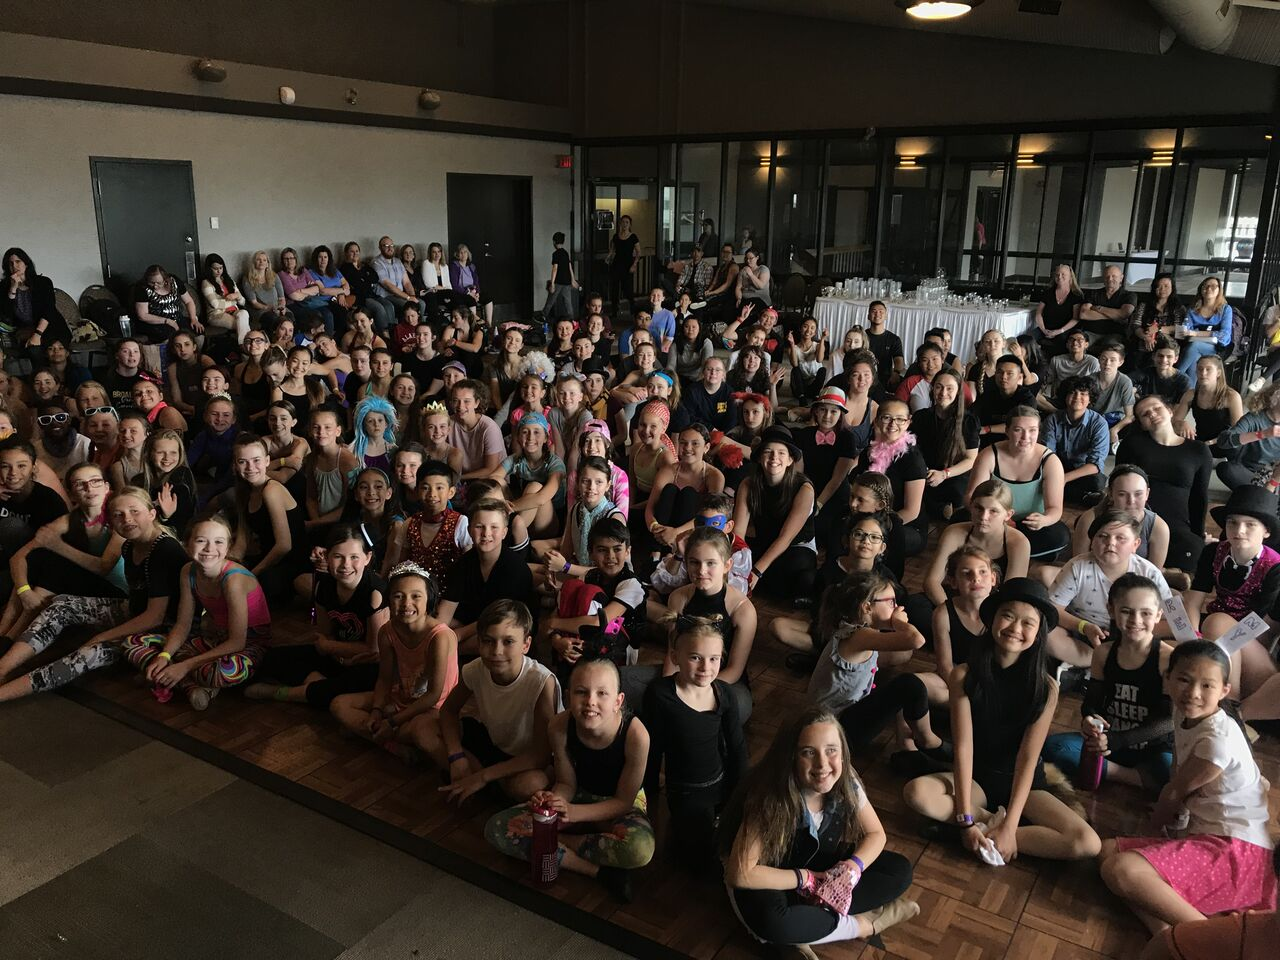 Broadway Dance Convention - June 16th 2018